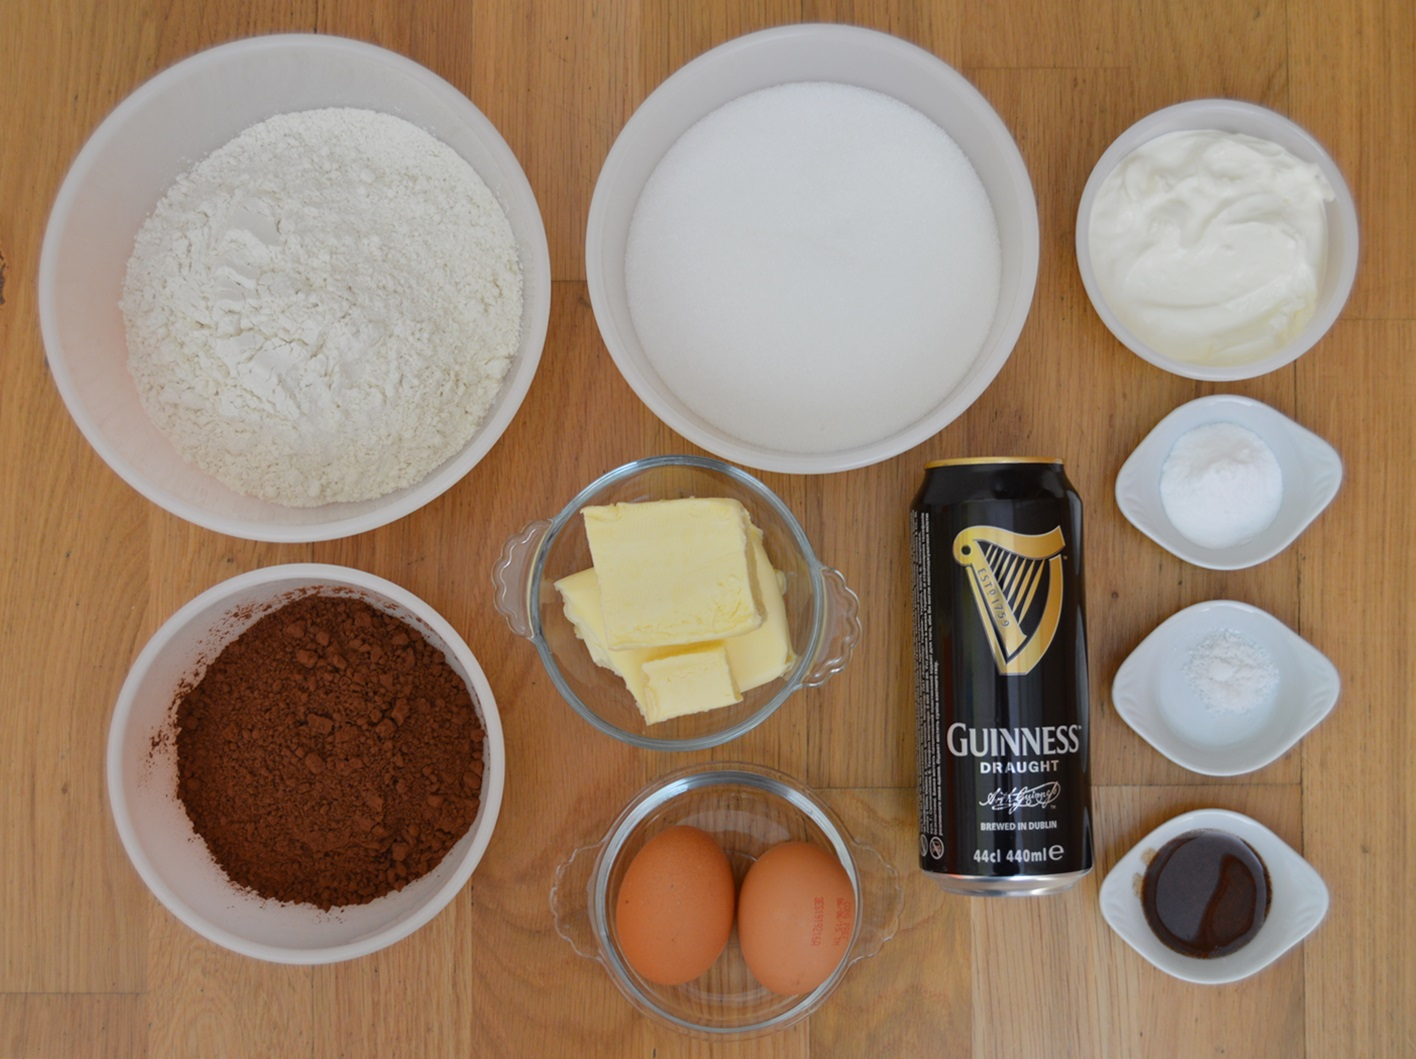 Ingredientes bundt cake de chocolate y cerveza Guinness. Aroma de chocolate